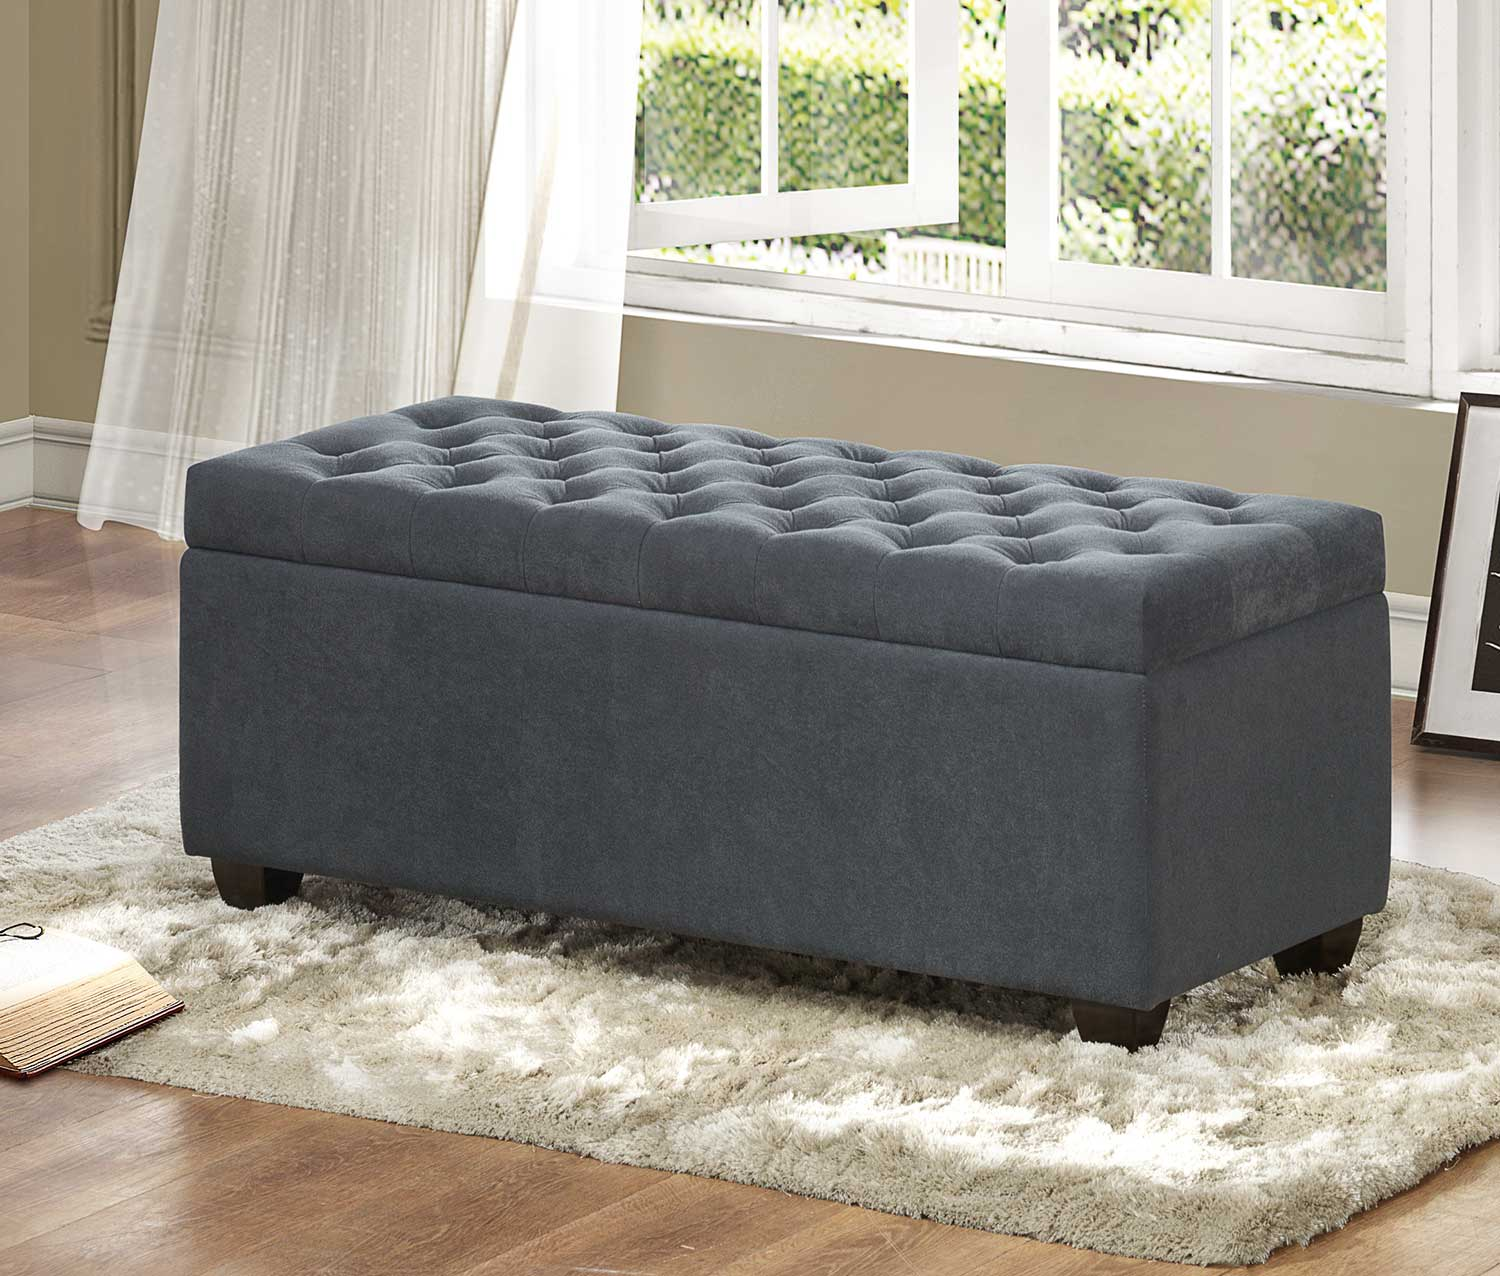 Homelegance Colusa Lift-Top Storage Bench - Neutral Grey Fabric